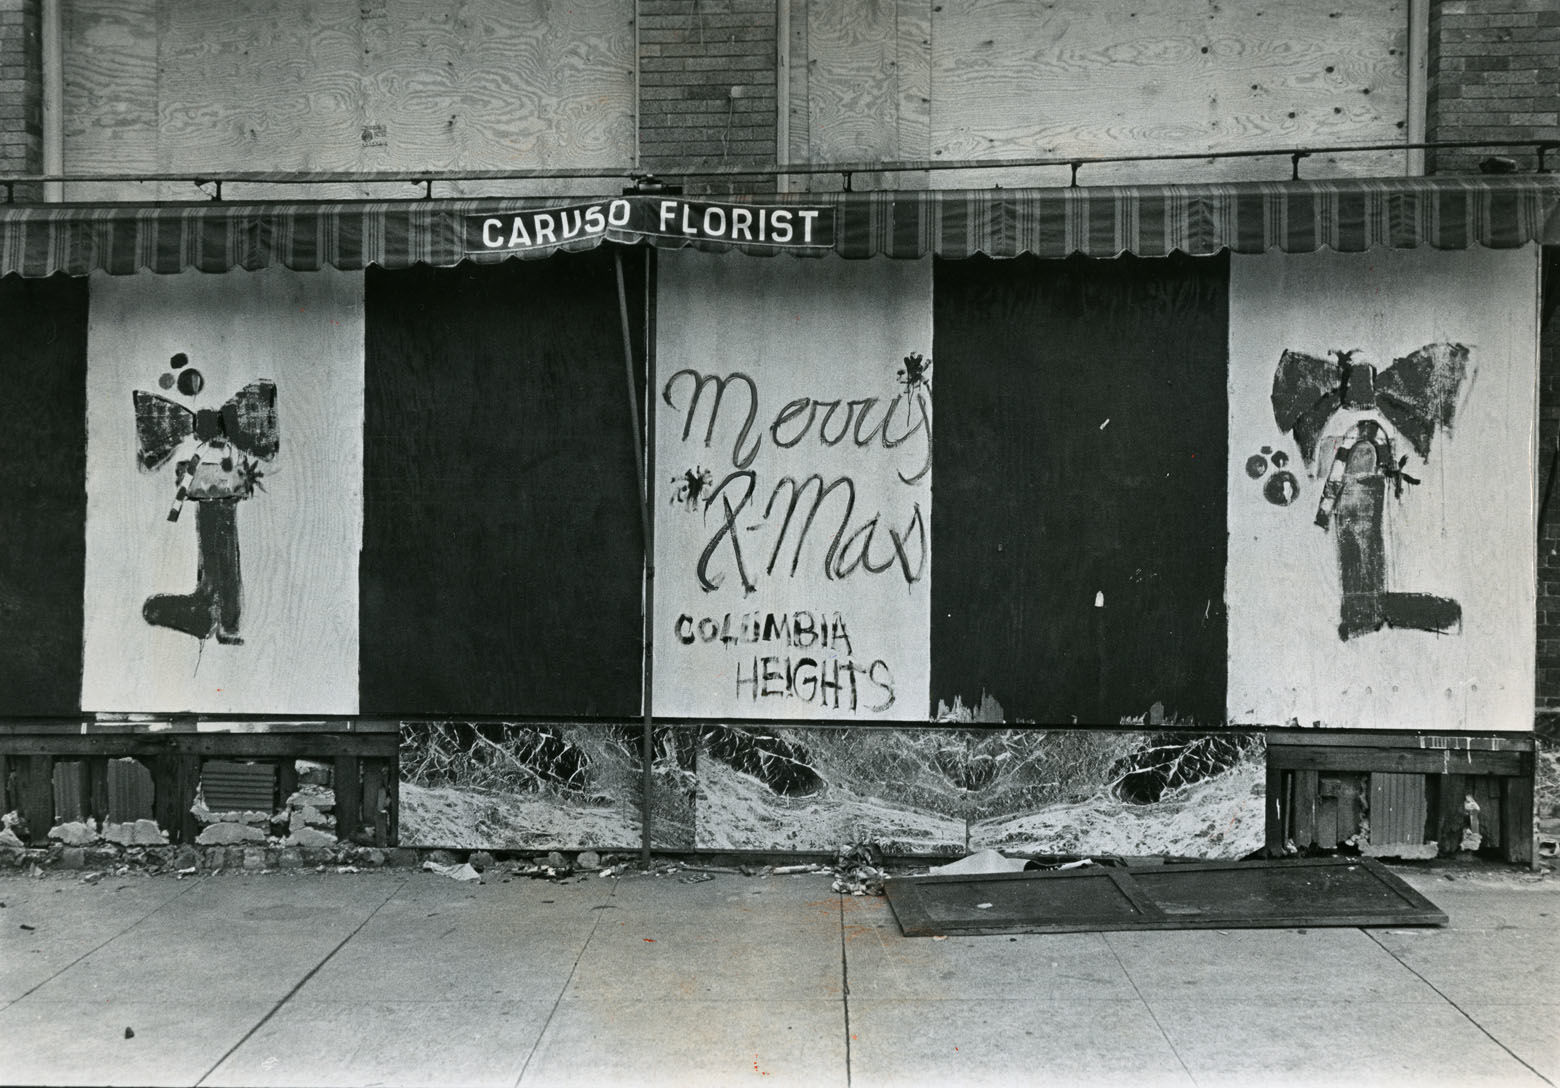 Boarded-up stores, burned-out husks of buildings and vacant lots dotted the riot corridors for month after the riots with little visible improvement. Delays in rebuilding would later span decades. Reprinted with permission of the DC Public Library, Star Collection, © Washington Post.